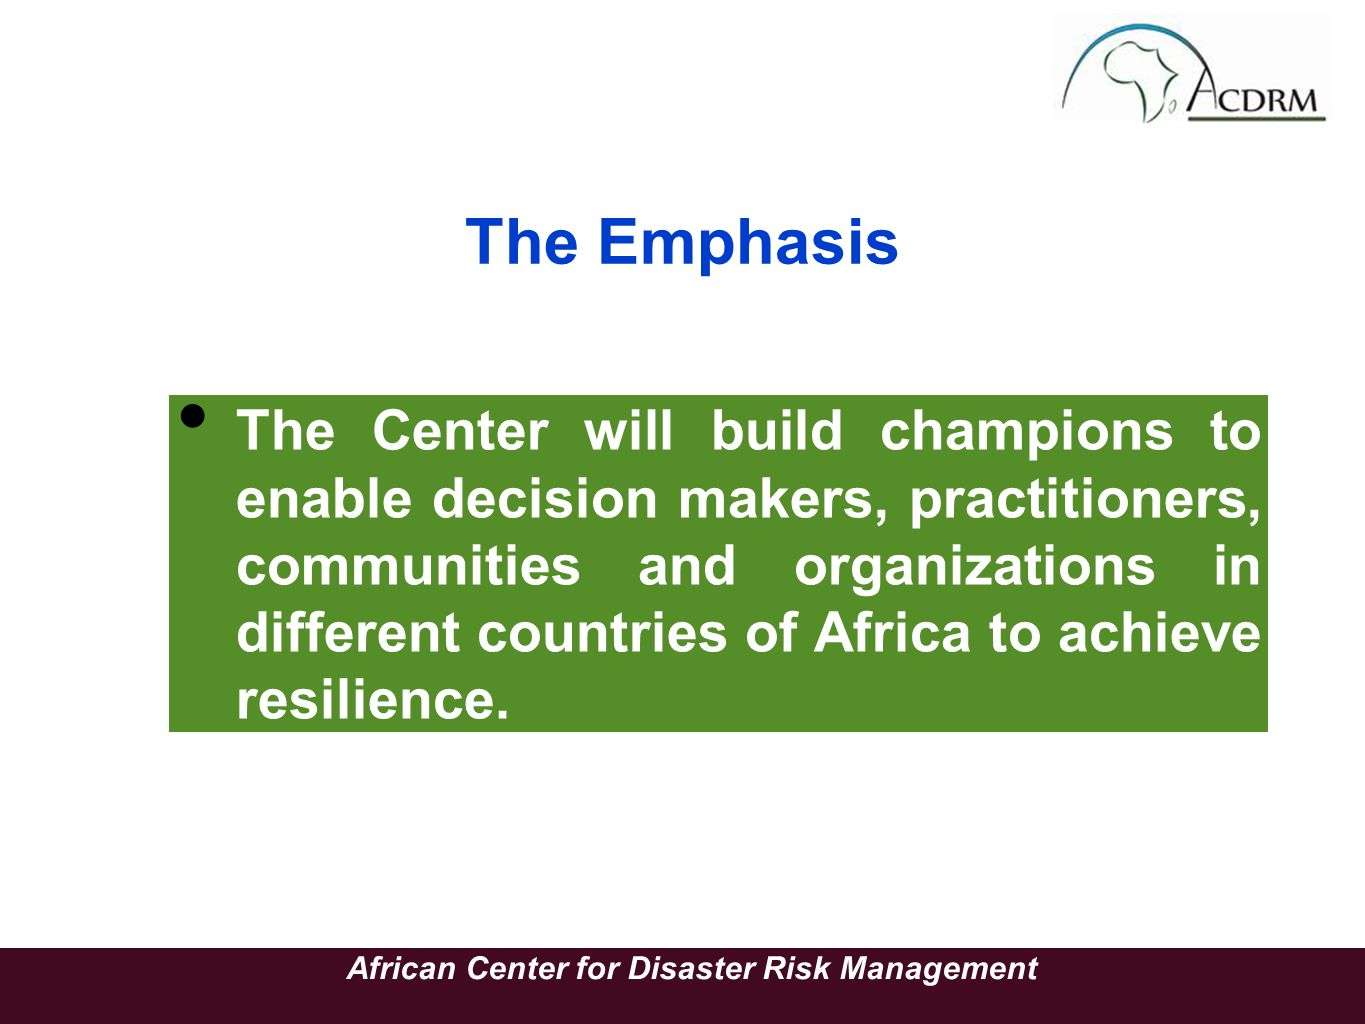 The Emphasis The Center will build champions to enable decision makers, practitioners, communities and organizations in different countries of Africa to achieve resilience.